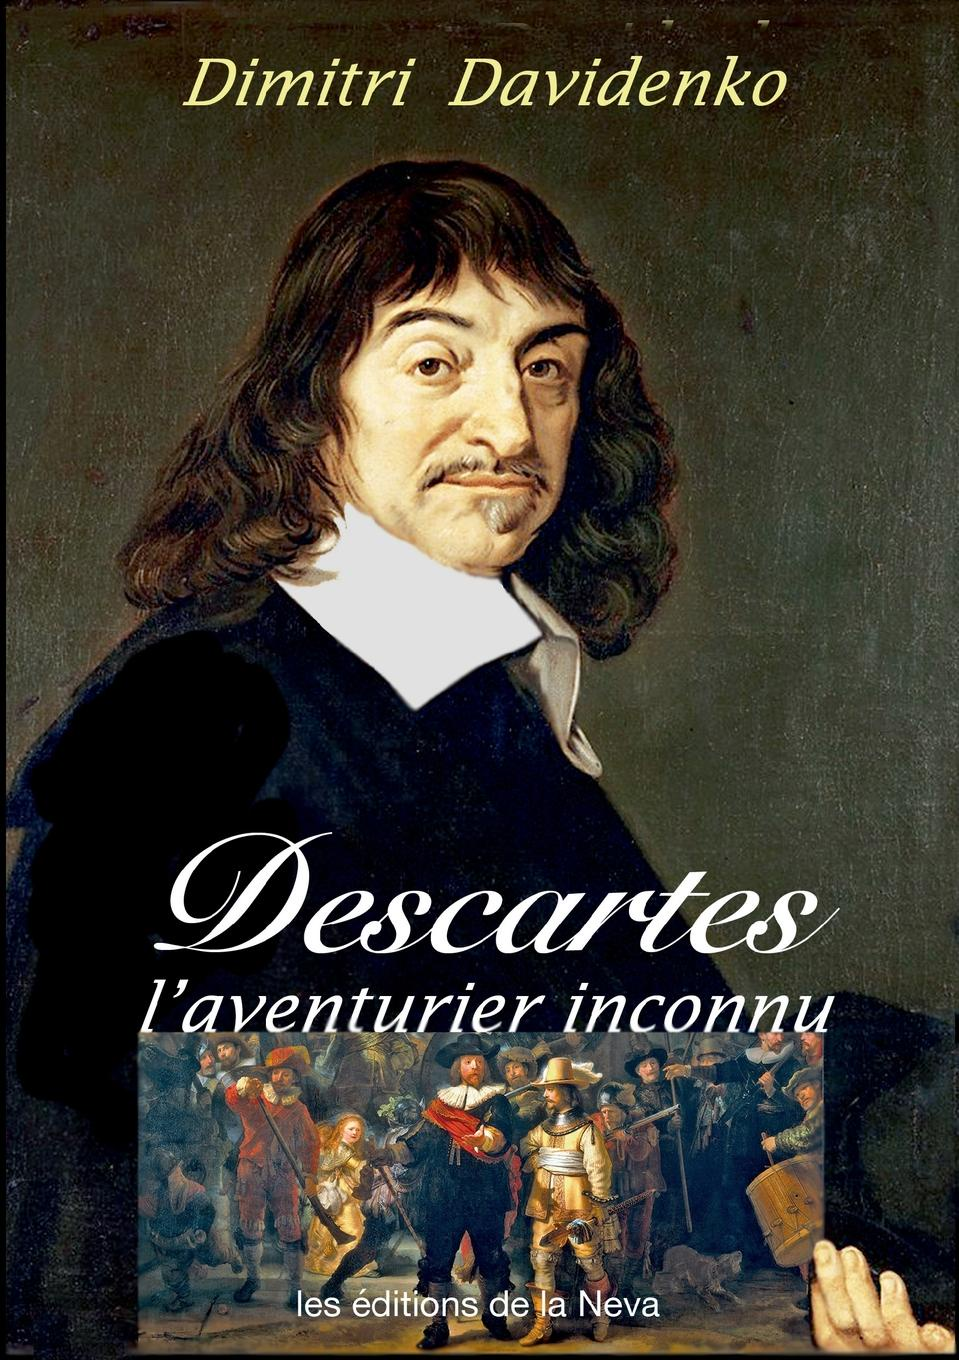 Dimitri Davidenko Descartes, l.aventurier inconnu sully prudhomme prose 1883 l expression dans les beaux arts application de la psychologie a l etude de l artiste et des beaux arts french edition